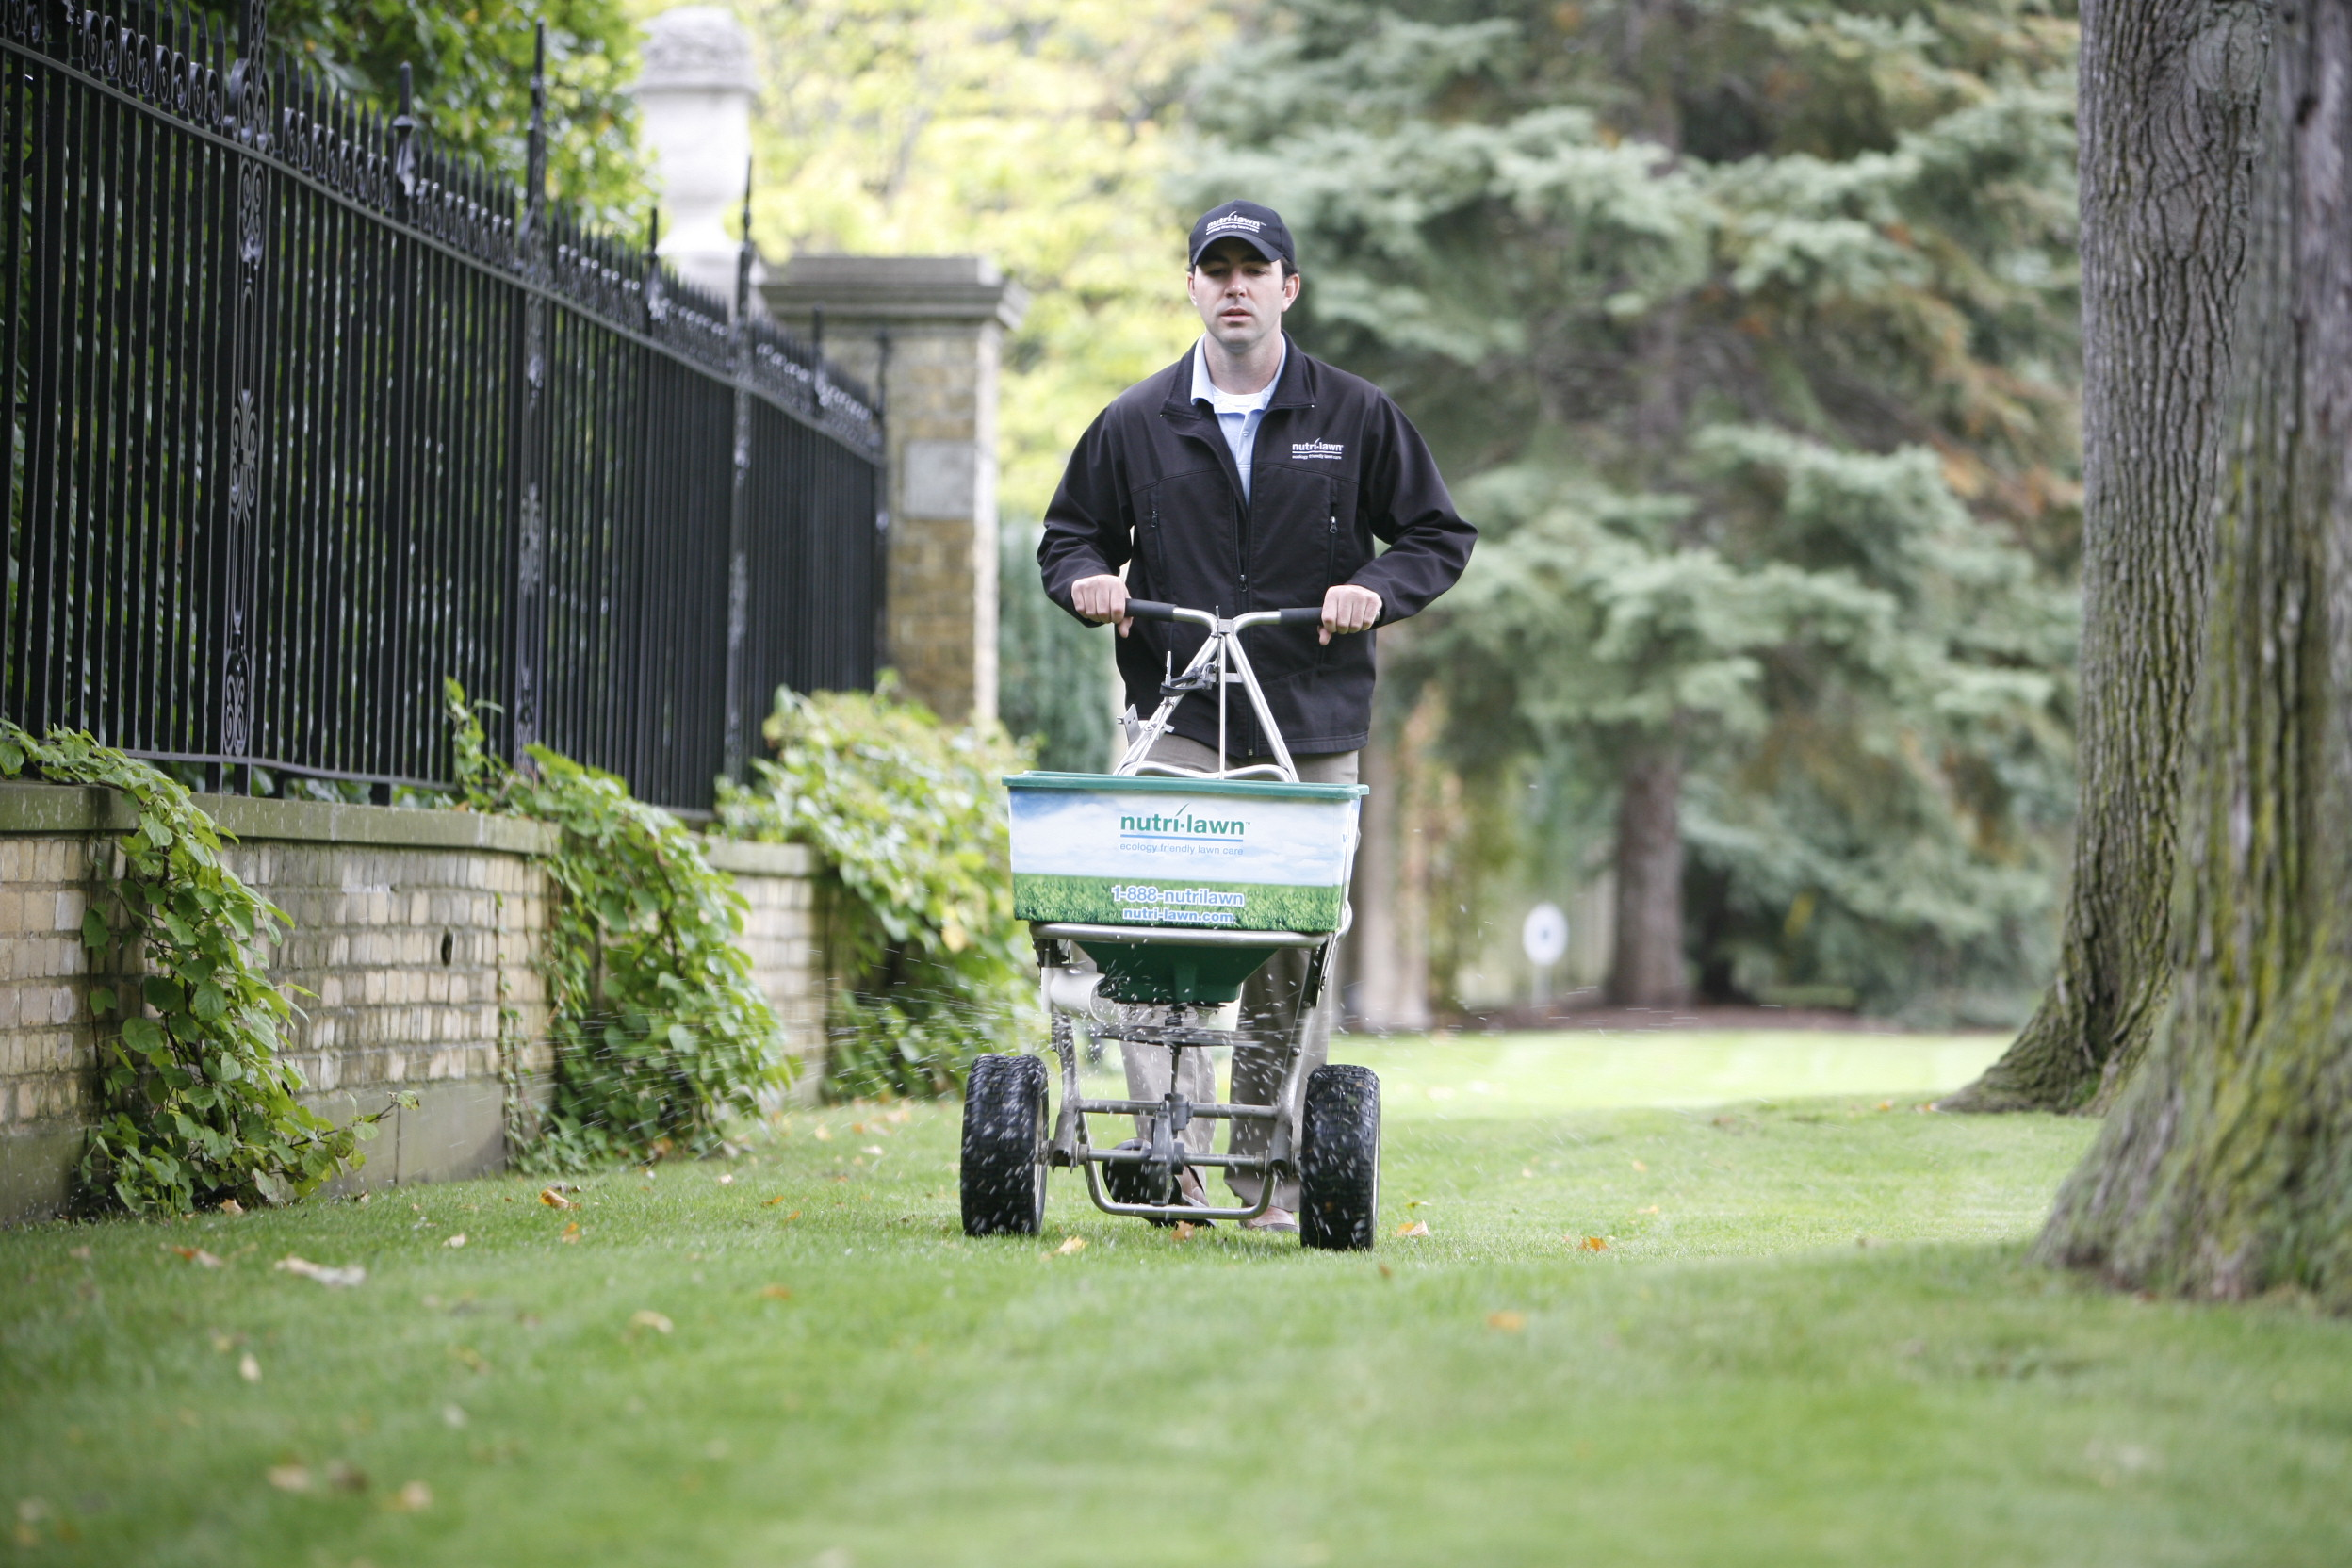 Most Popular Lawn Fertilizers for Vancouver - Featured Image